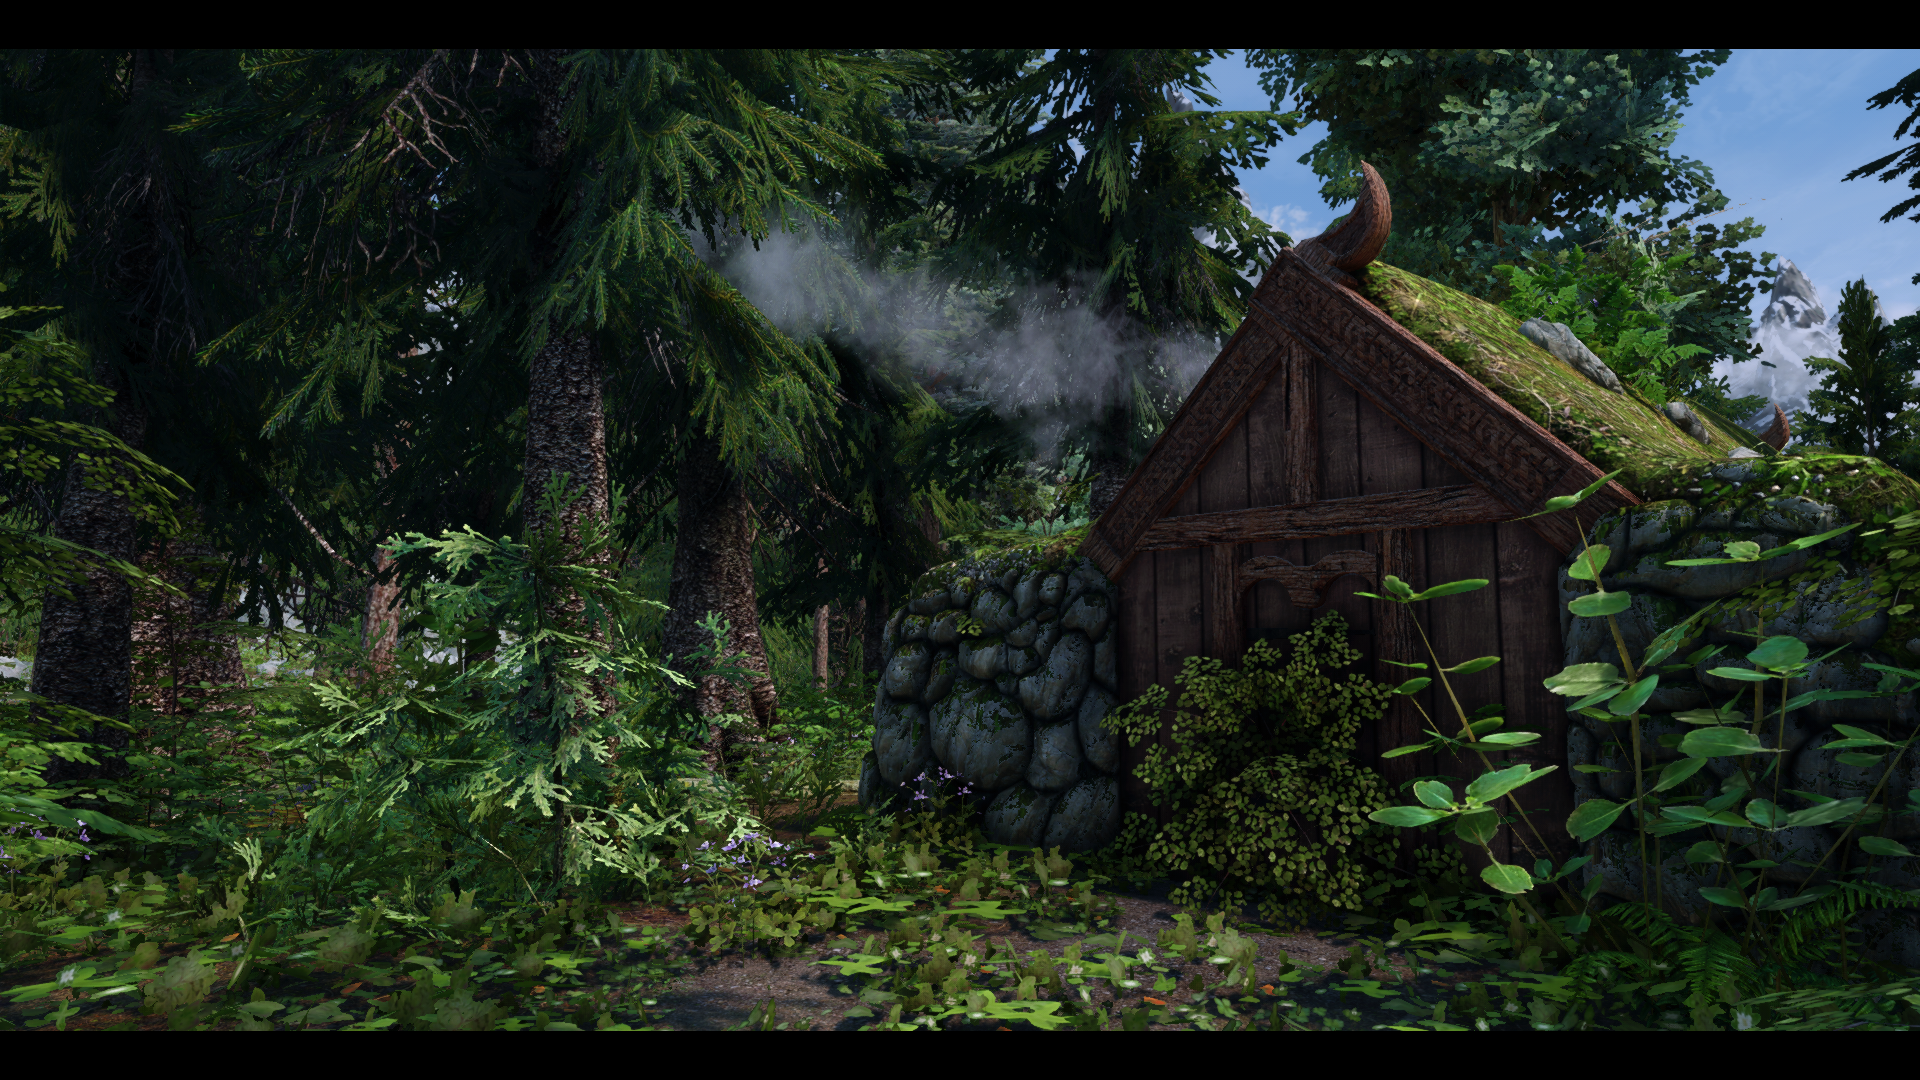 Home of the Druid